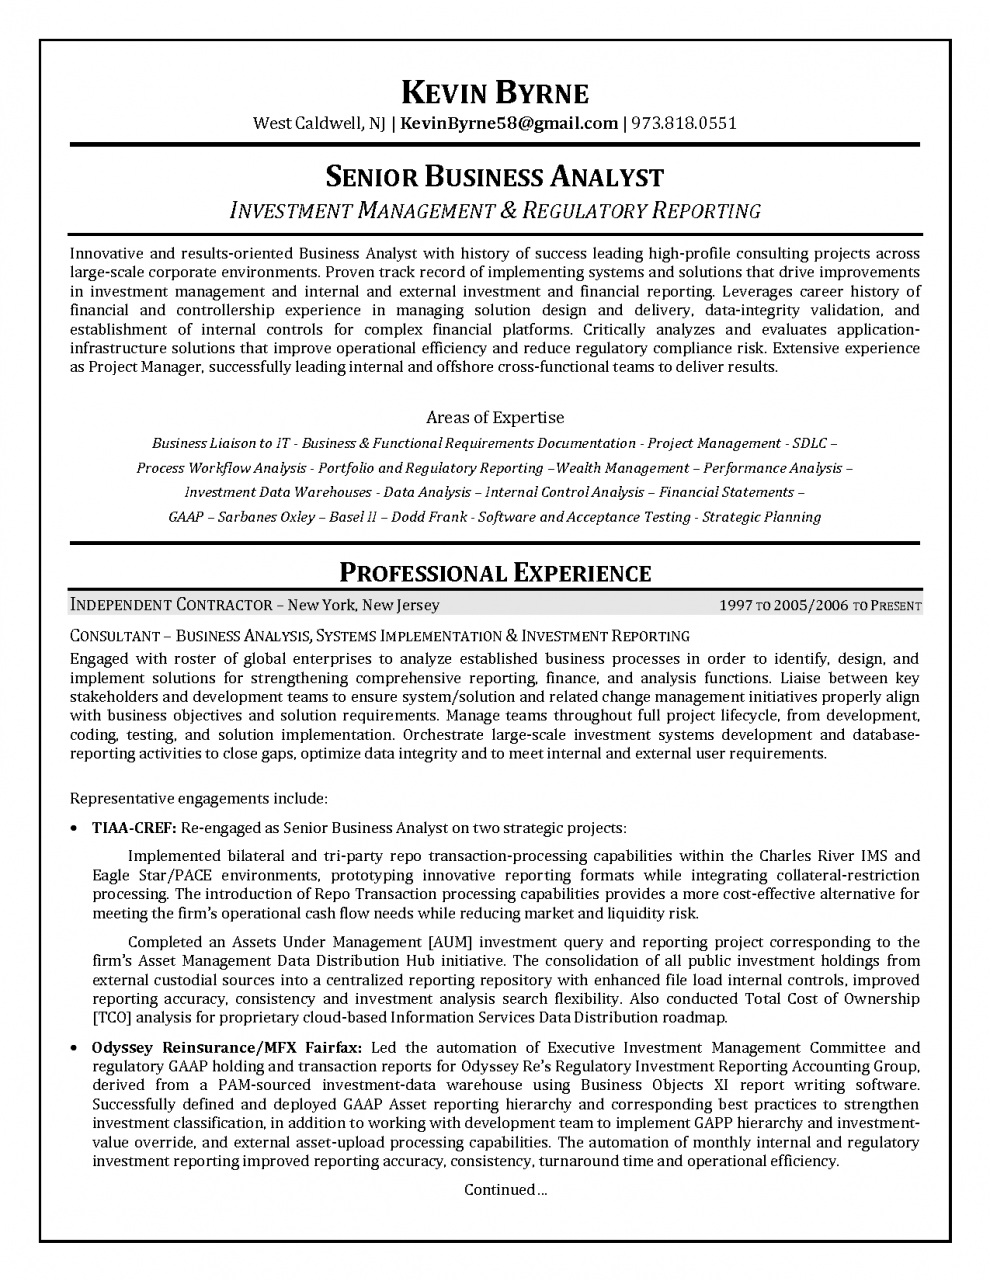 Business Analyst Resume Sample Enchanting Resumesenior Business Analyst Resume Format Business Analyst